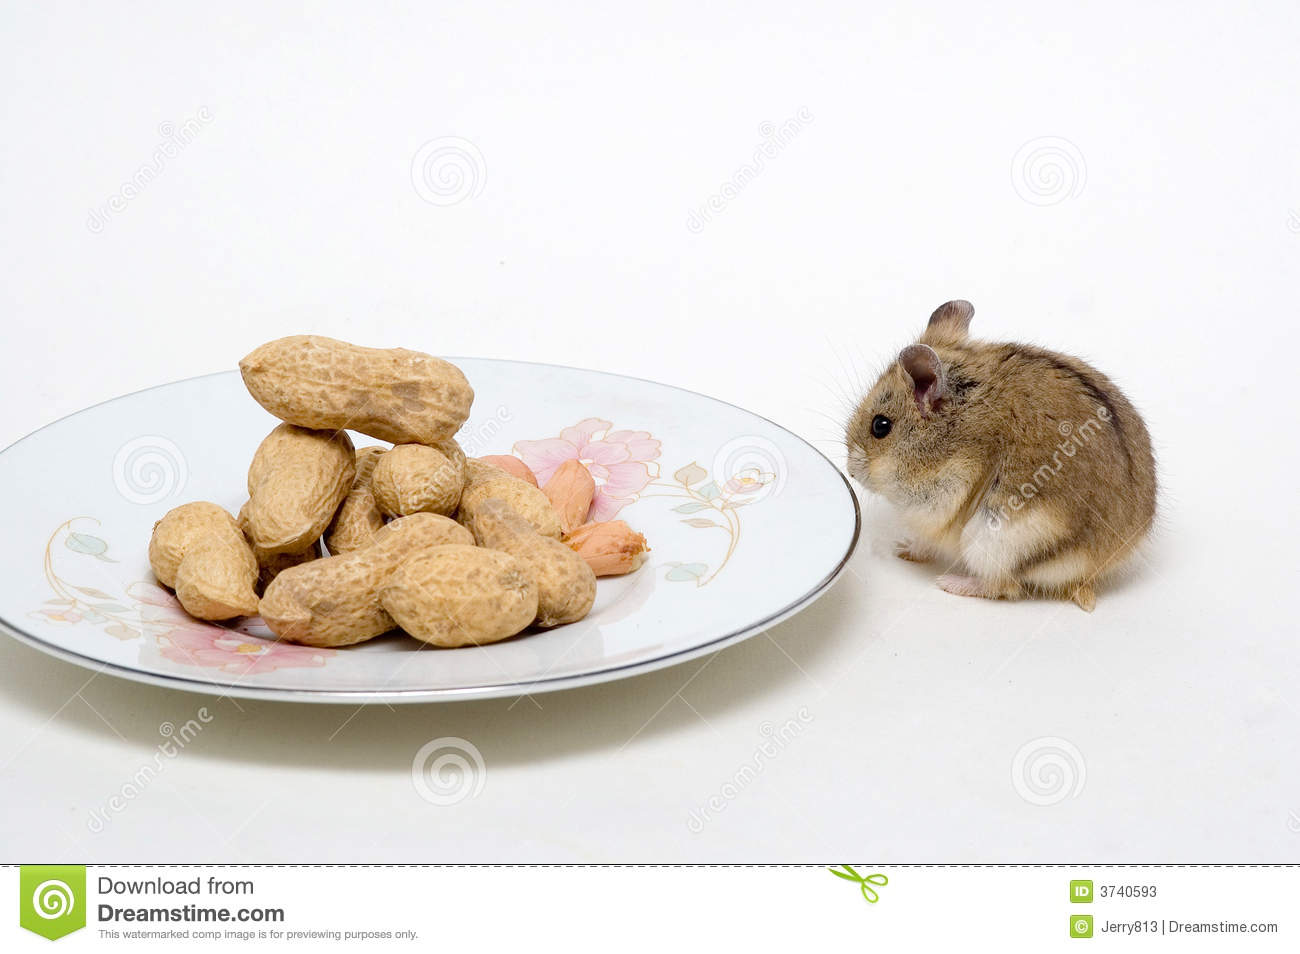 The hamsters eat peanuts